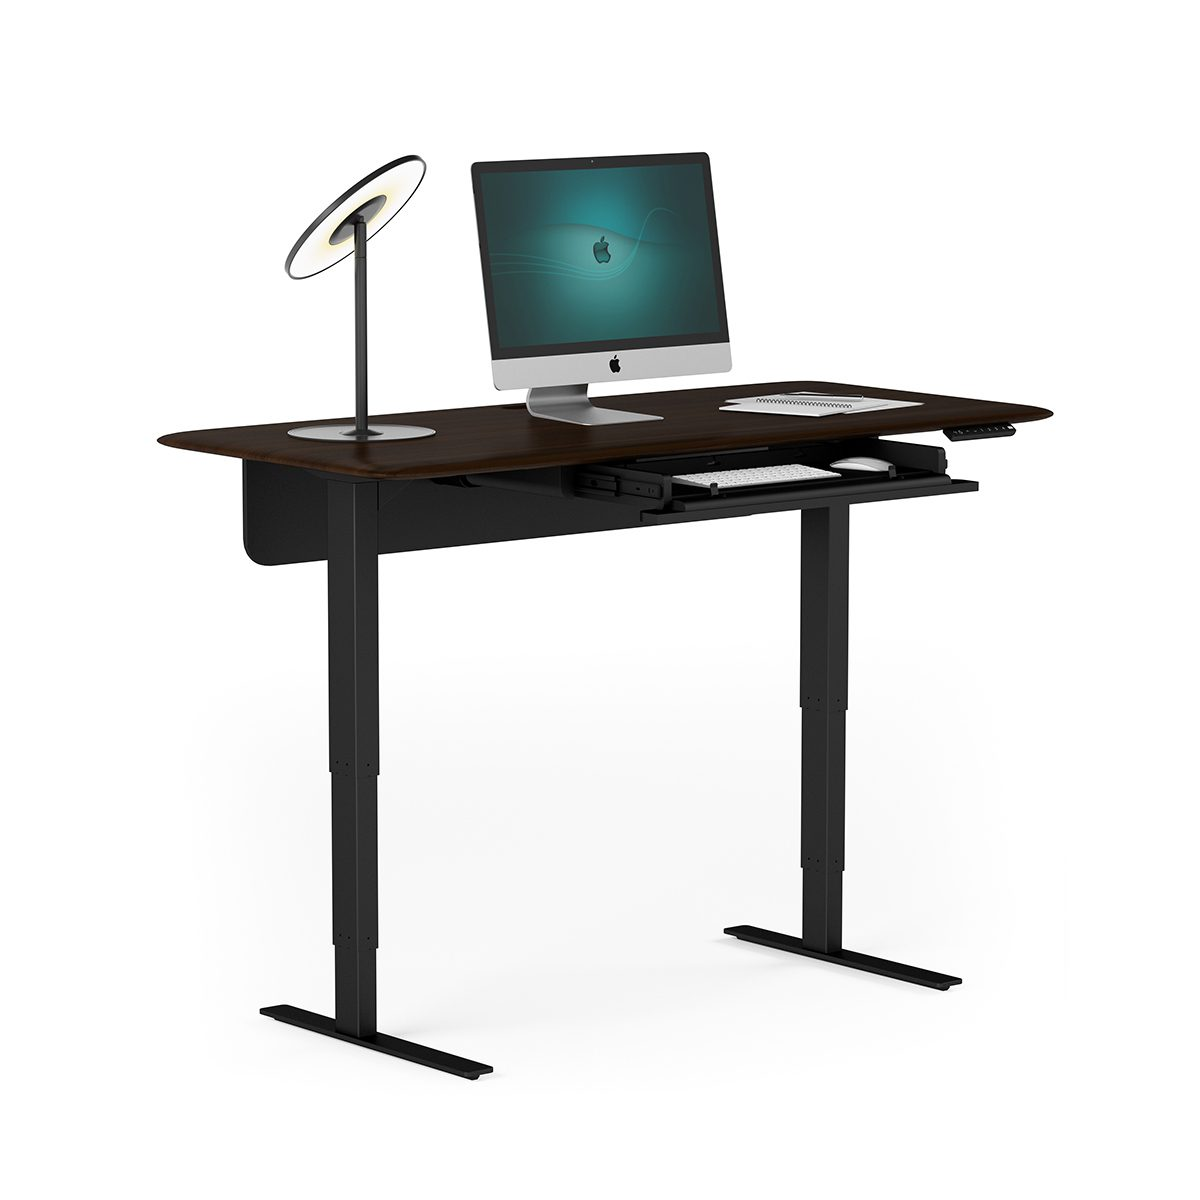 Sola lift height adjustable standing desk bdi furniture